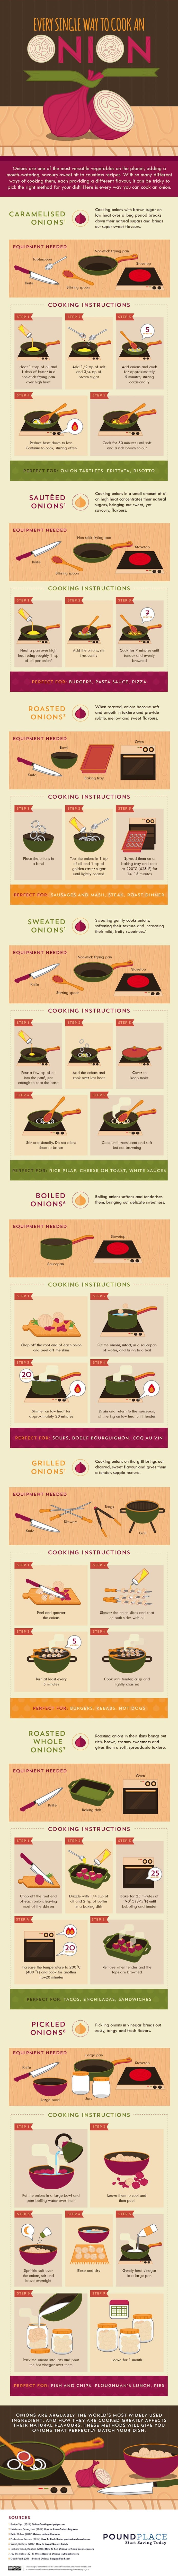 how-to-cook-onions-infographic-1